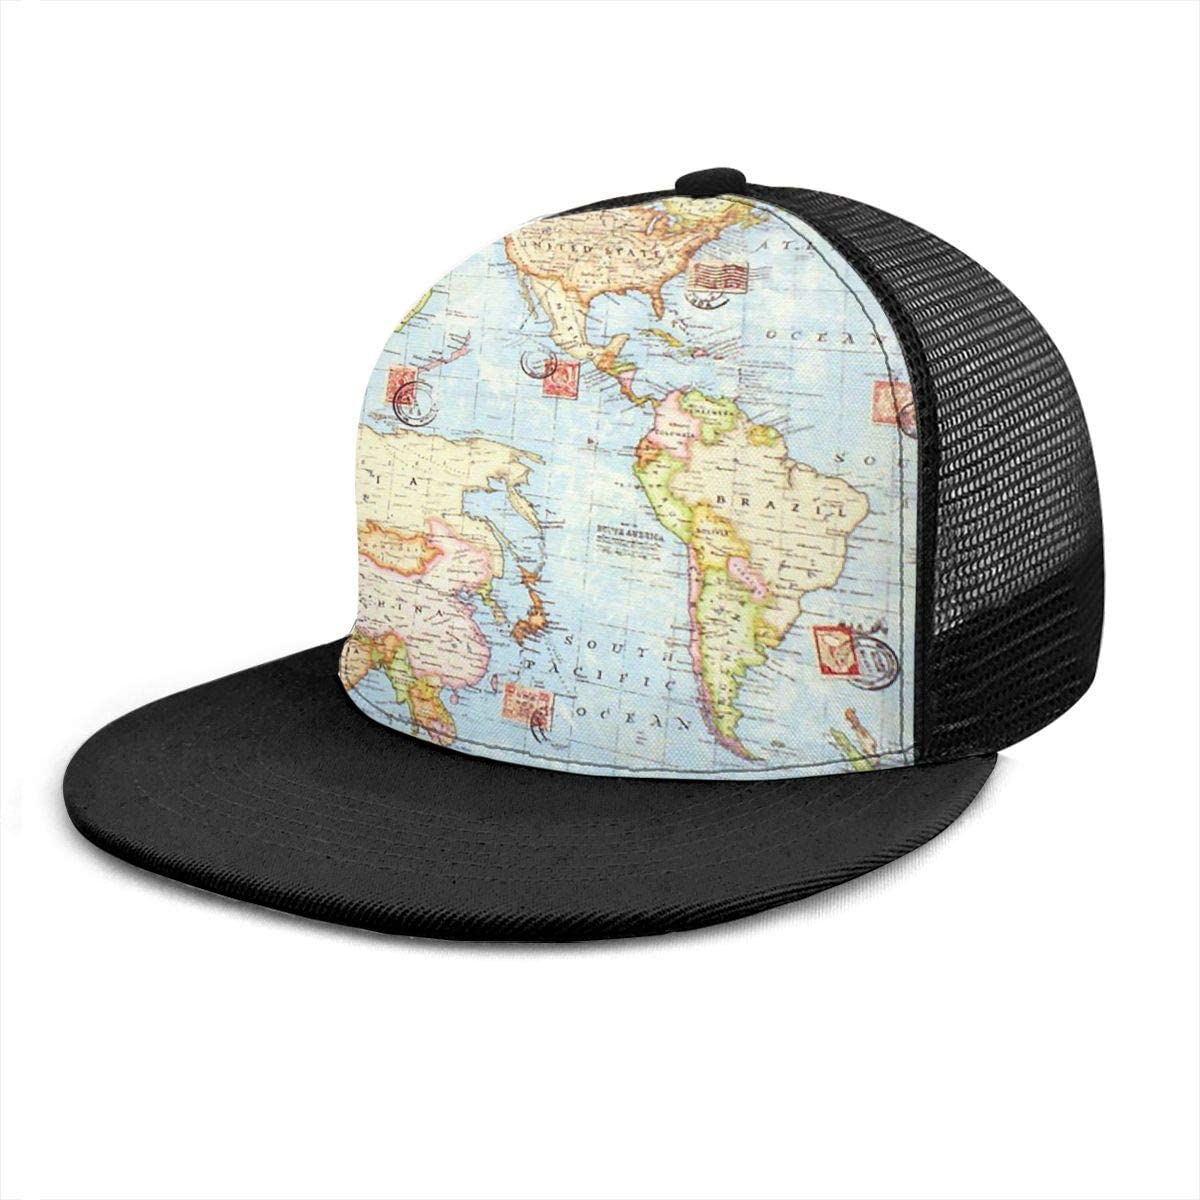 2 Classic Trucker Mesh Cap for Unisex Mens and Womens 100/% Polyester World Map Baseball Cap